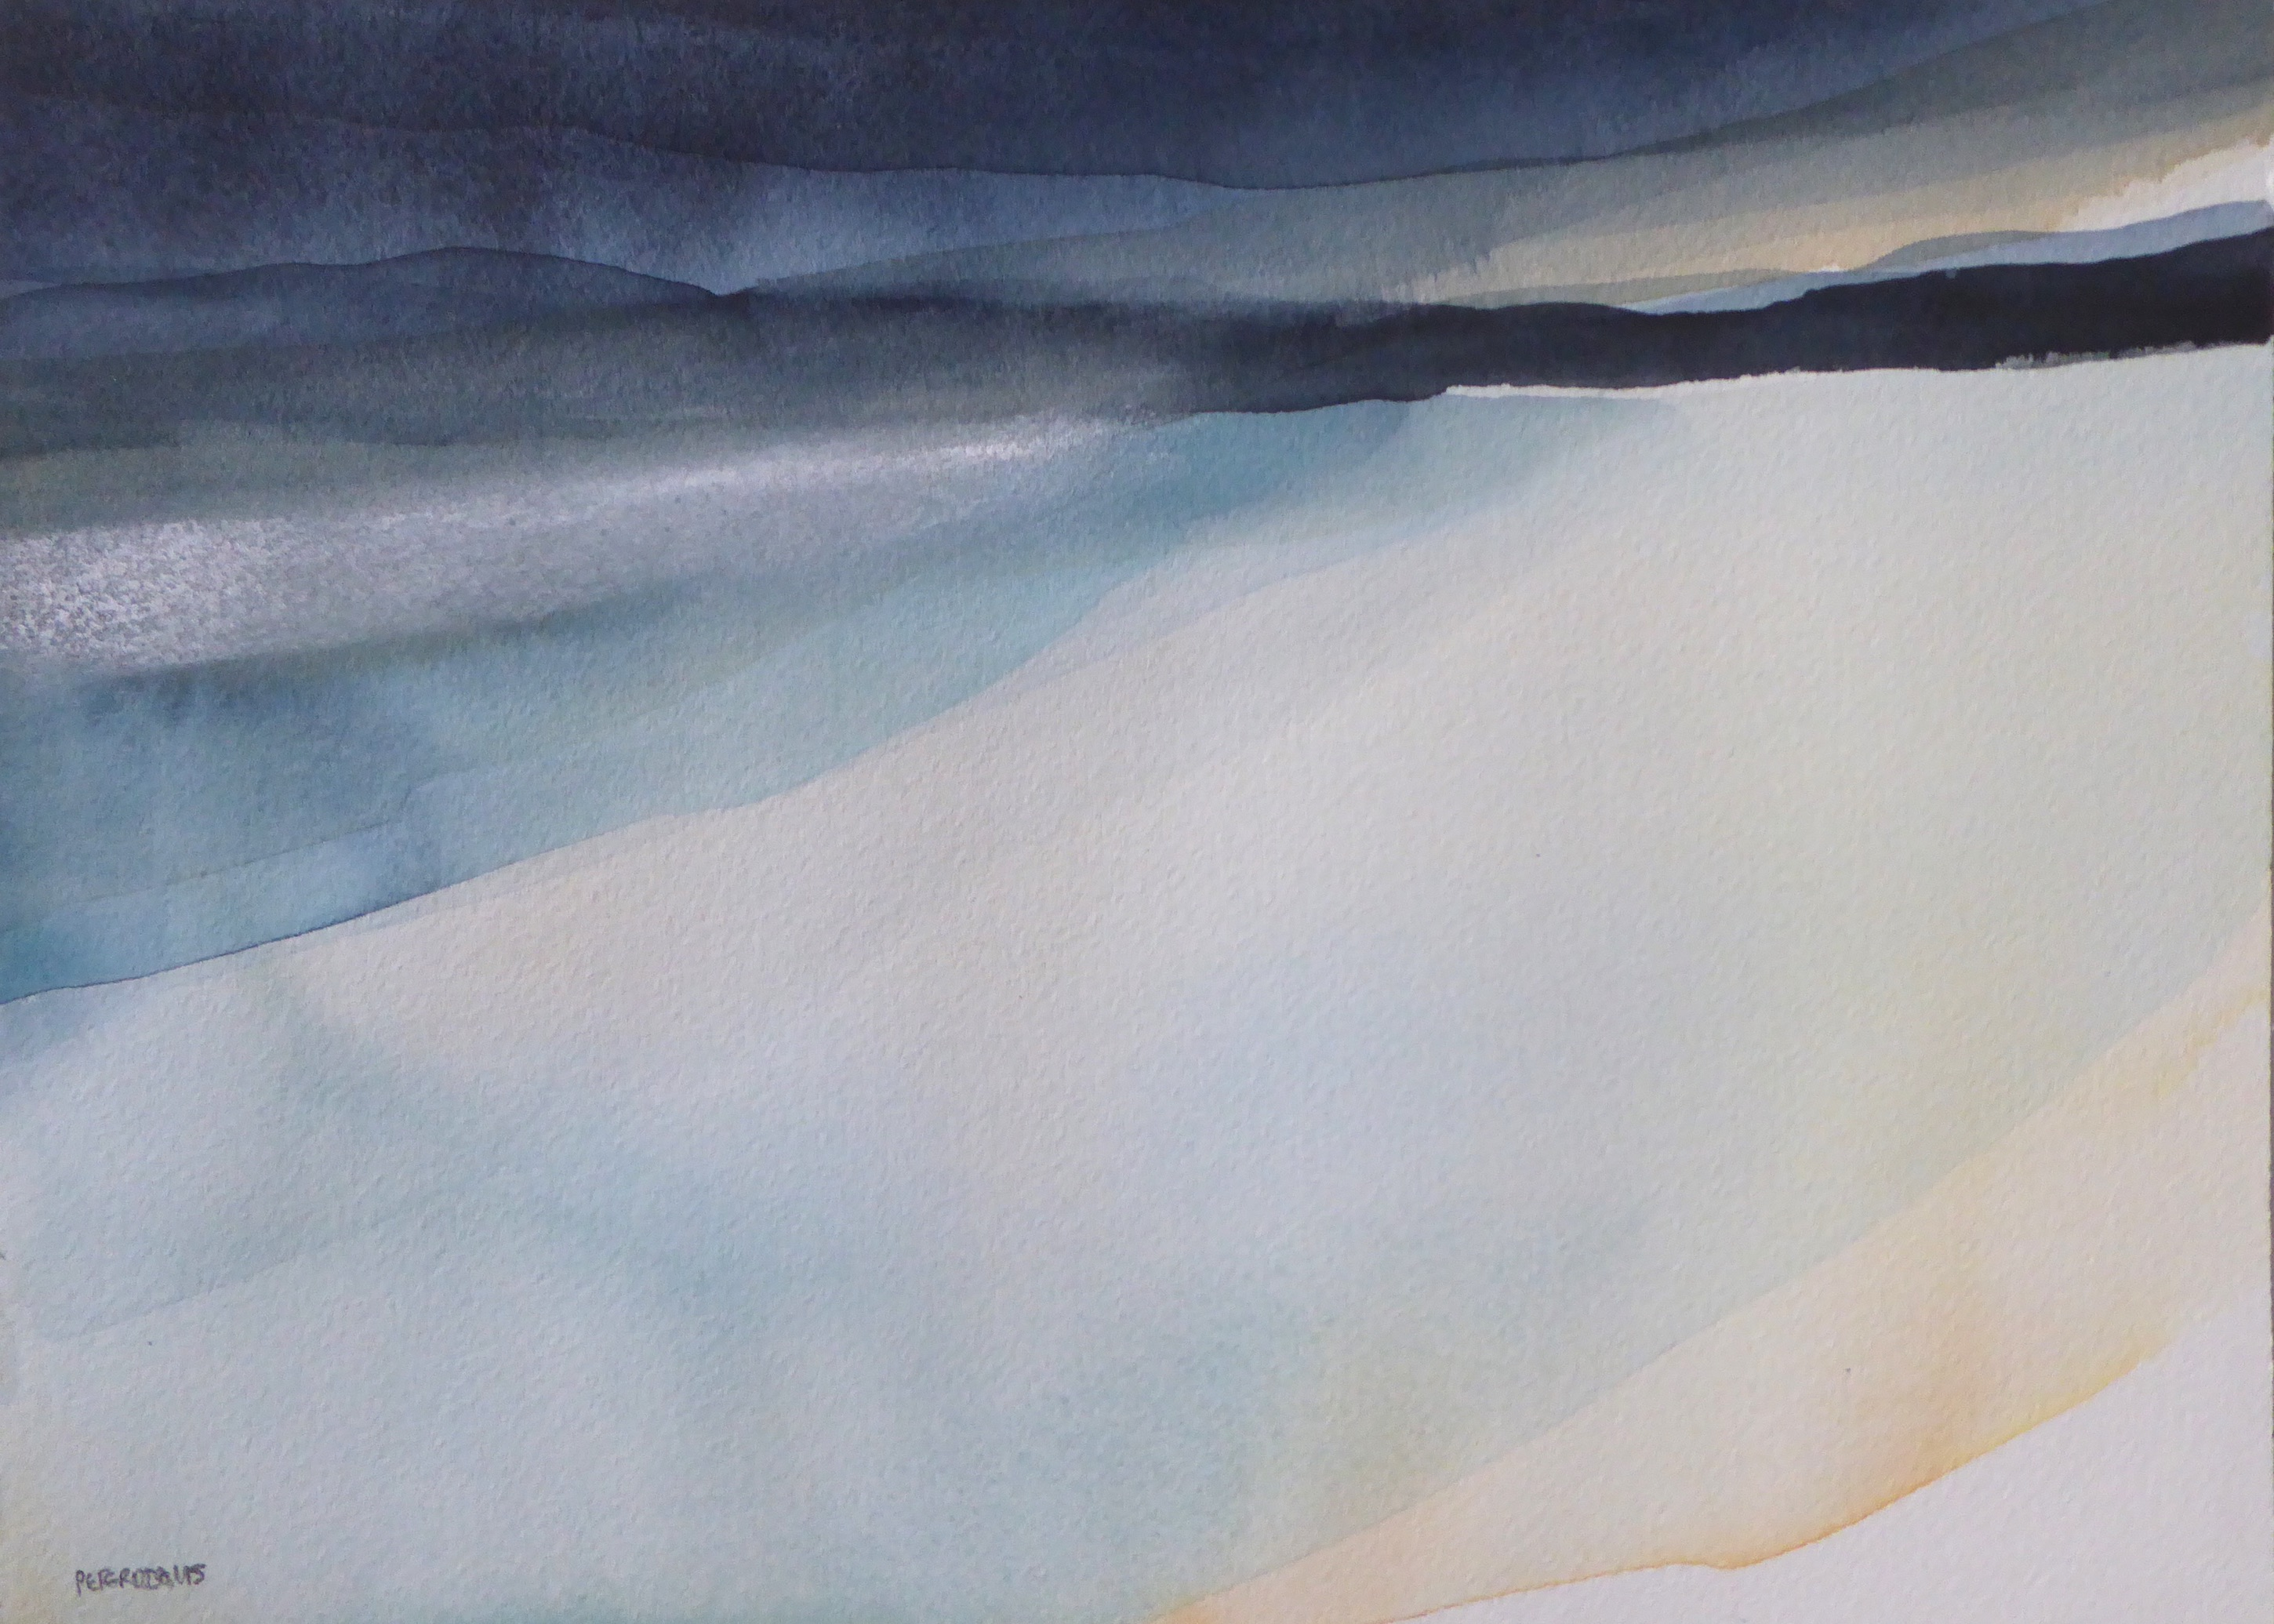 Peter Davis. Passing storm, Watercolour with chalk on paper 2018, 35x25cm)